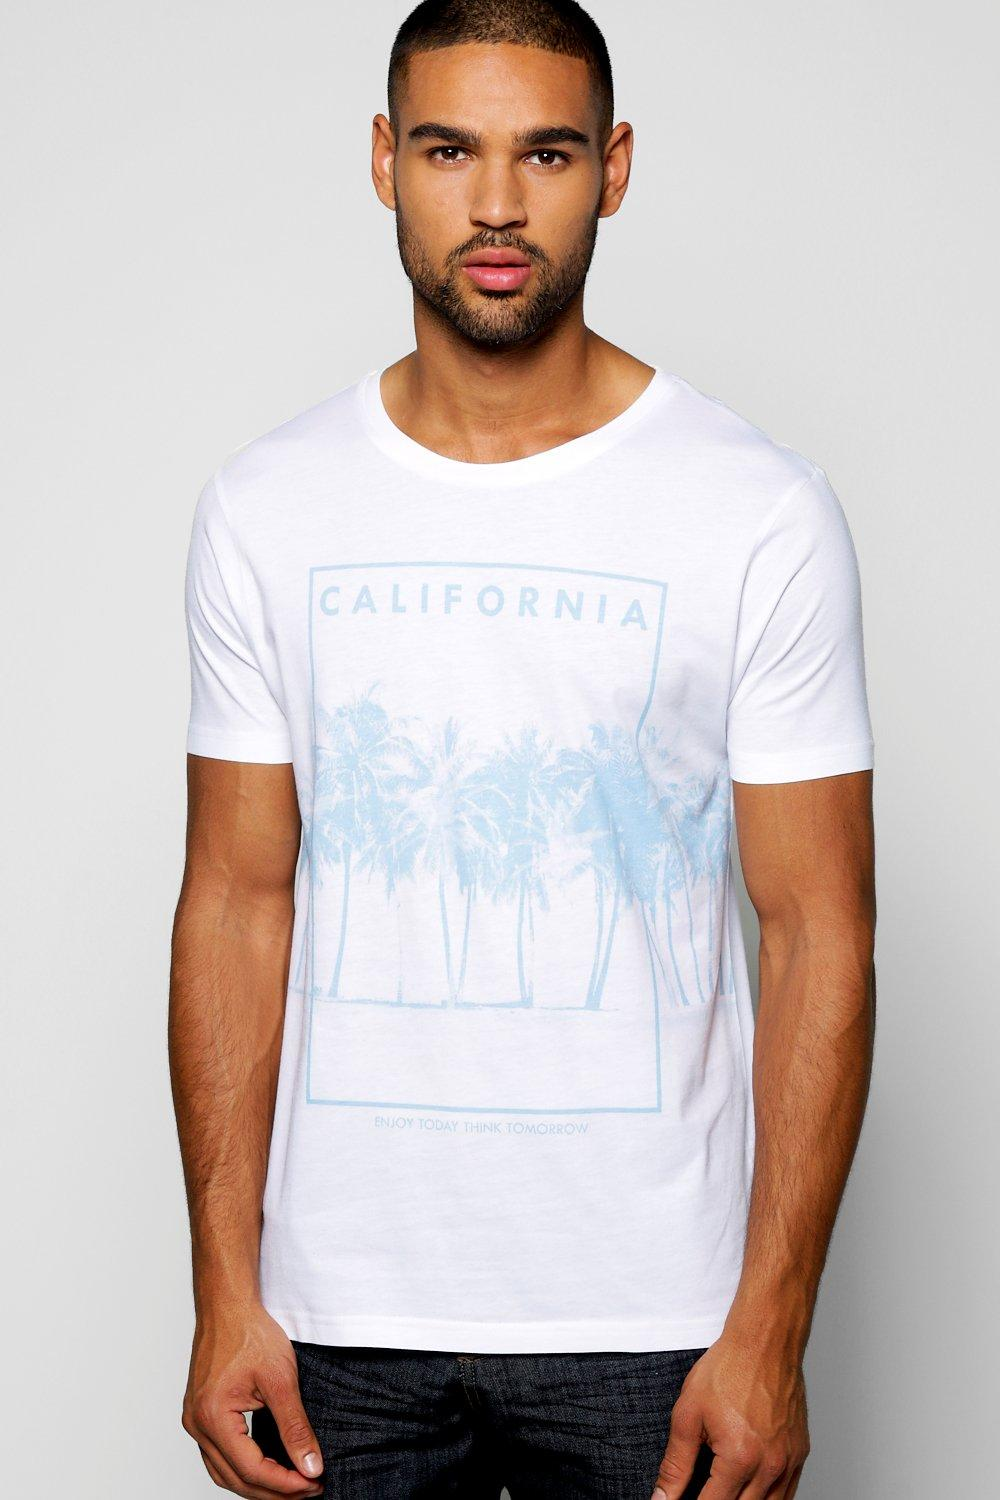 California Sublimation T Shirt